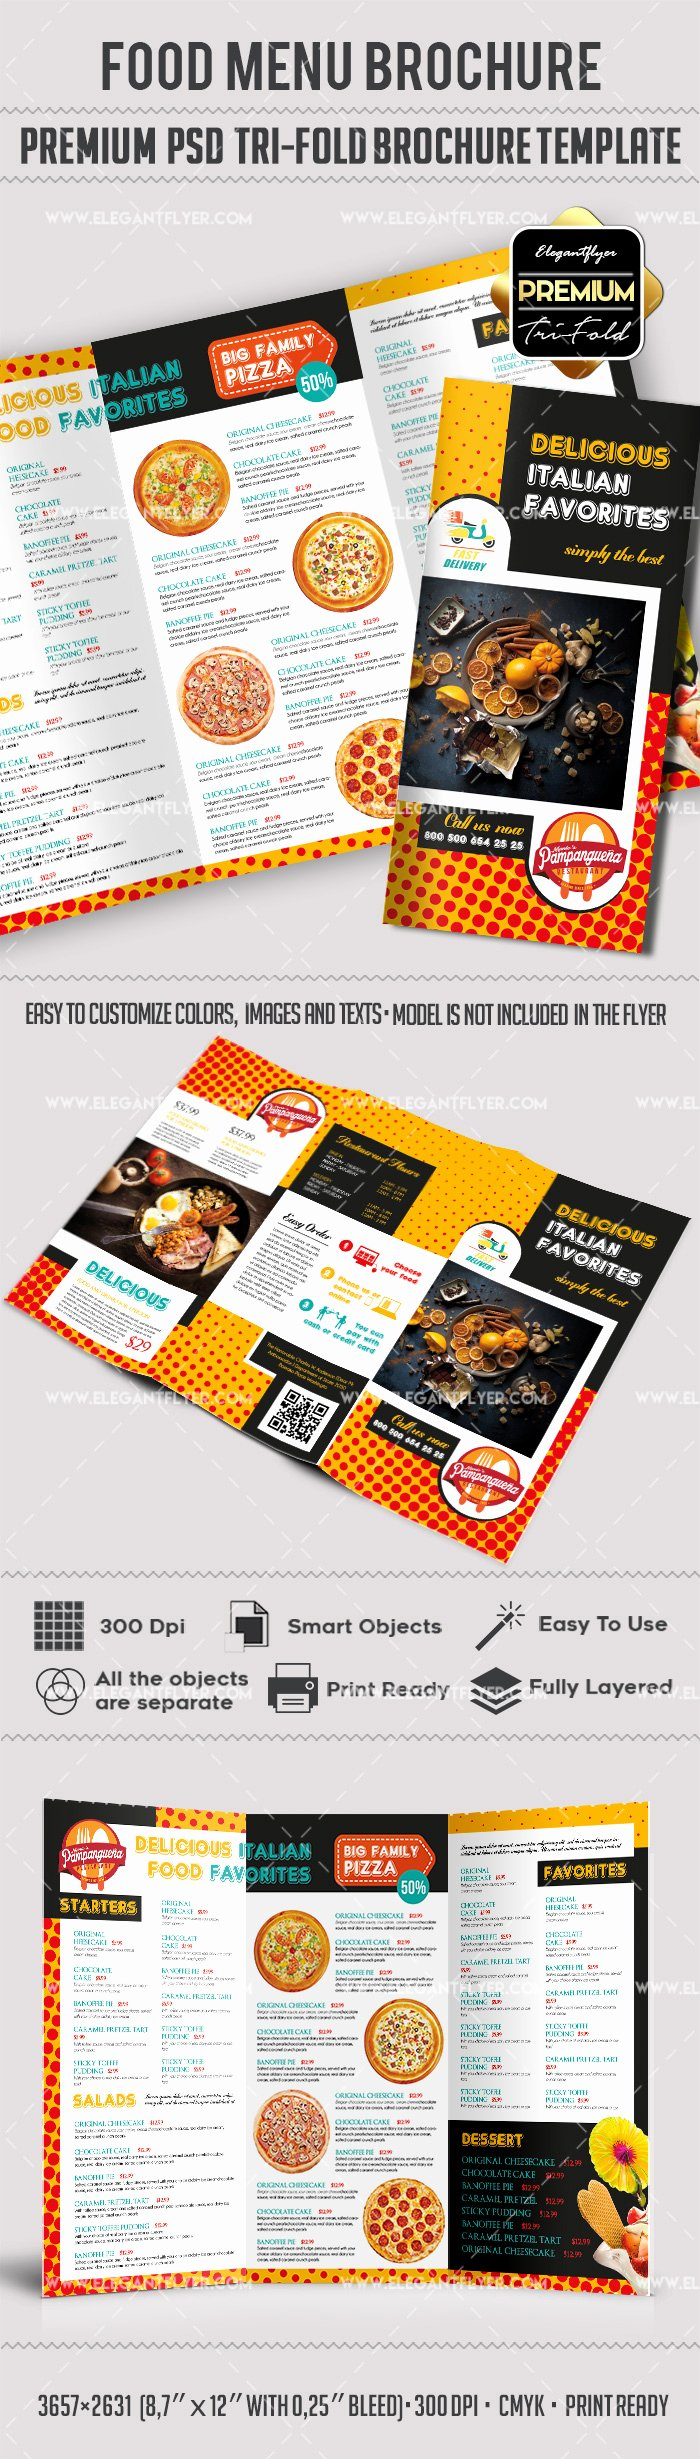 Trifold Menu Template Free Unique Food Menu Templates for Tri Fold Brochure – by Elegantflyer